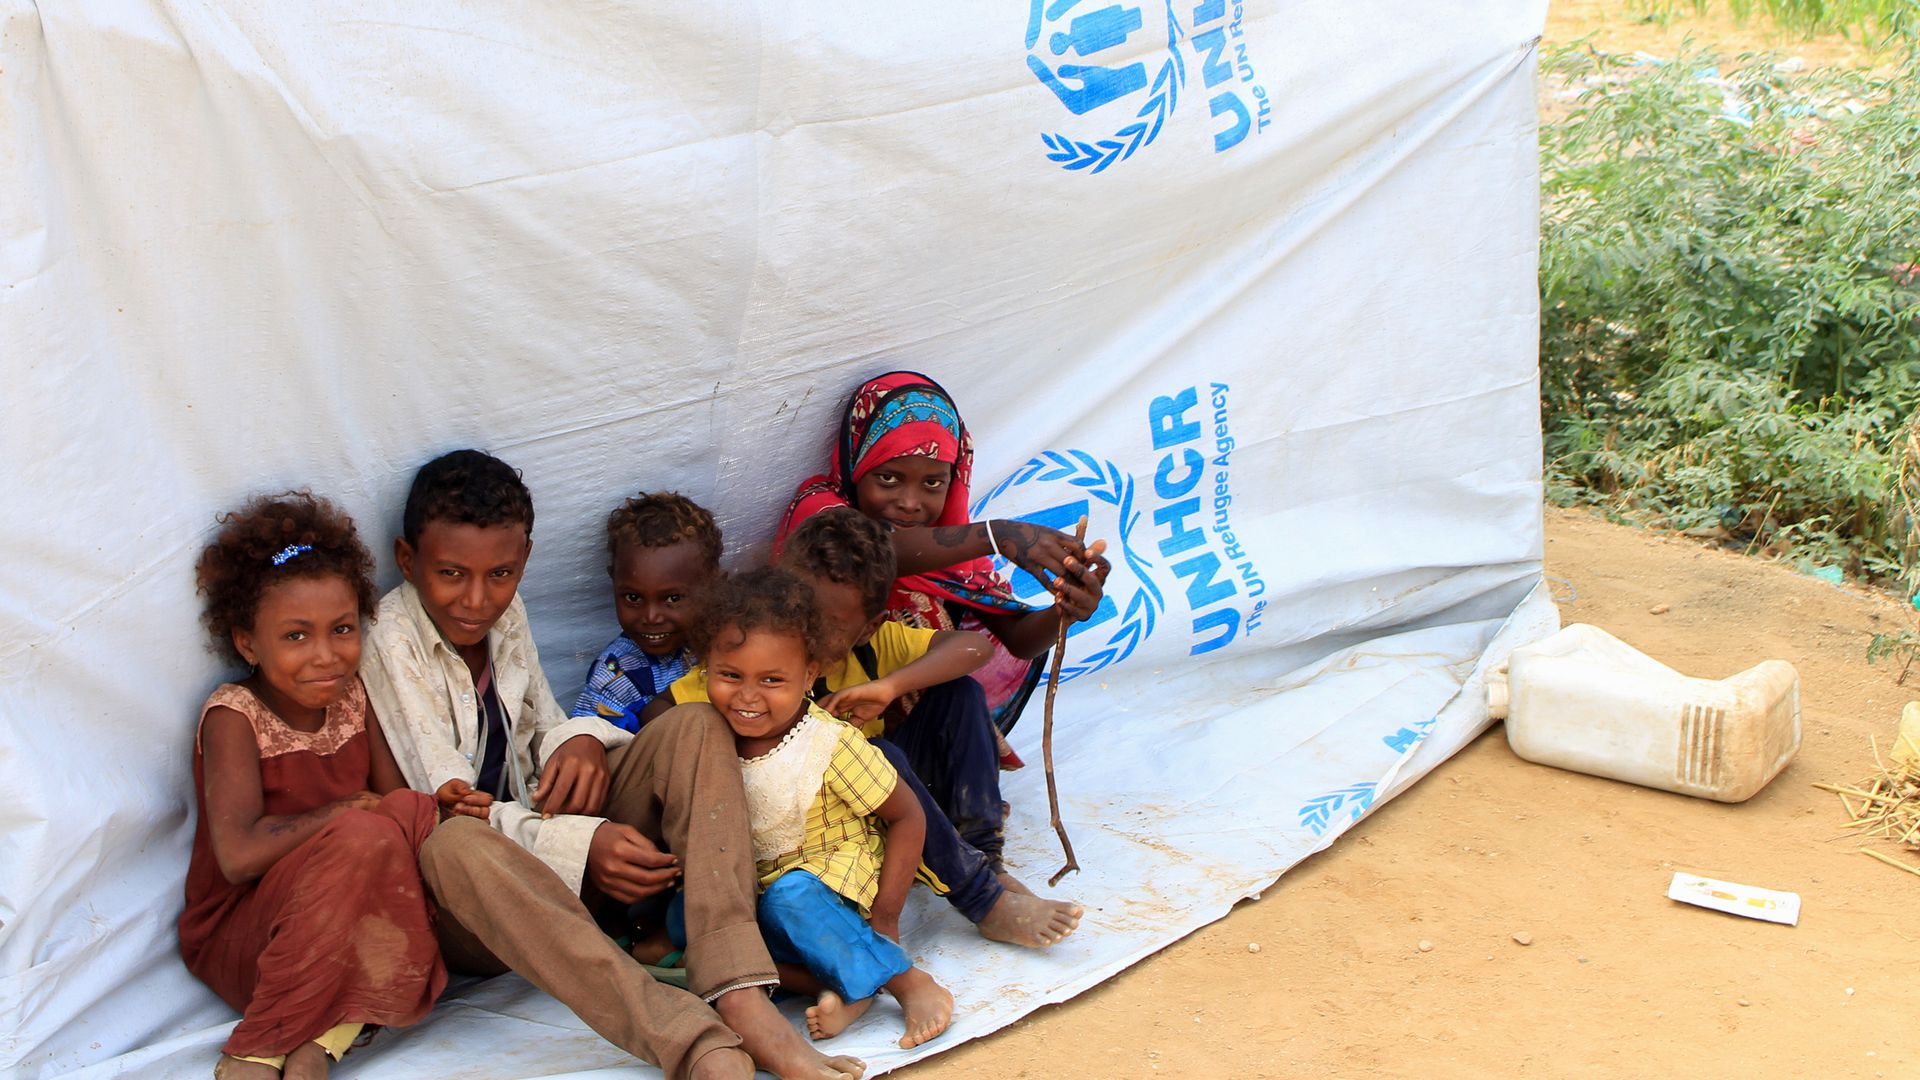 displaced Yemeni children sitting on a tarp